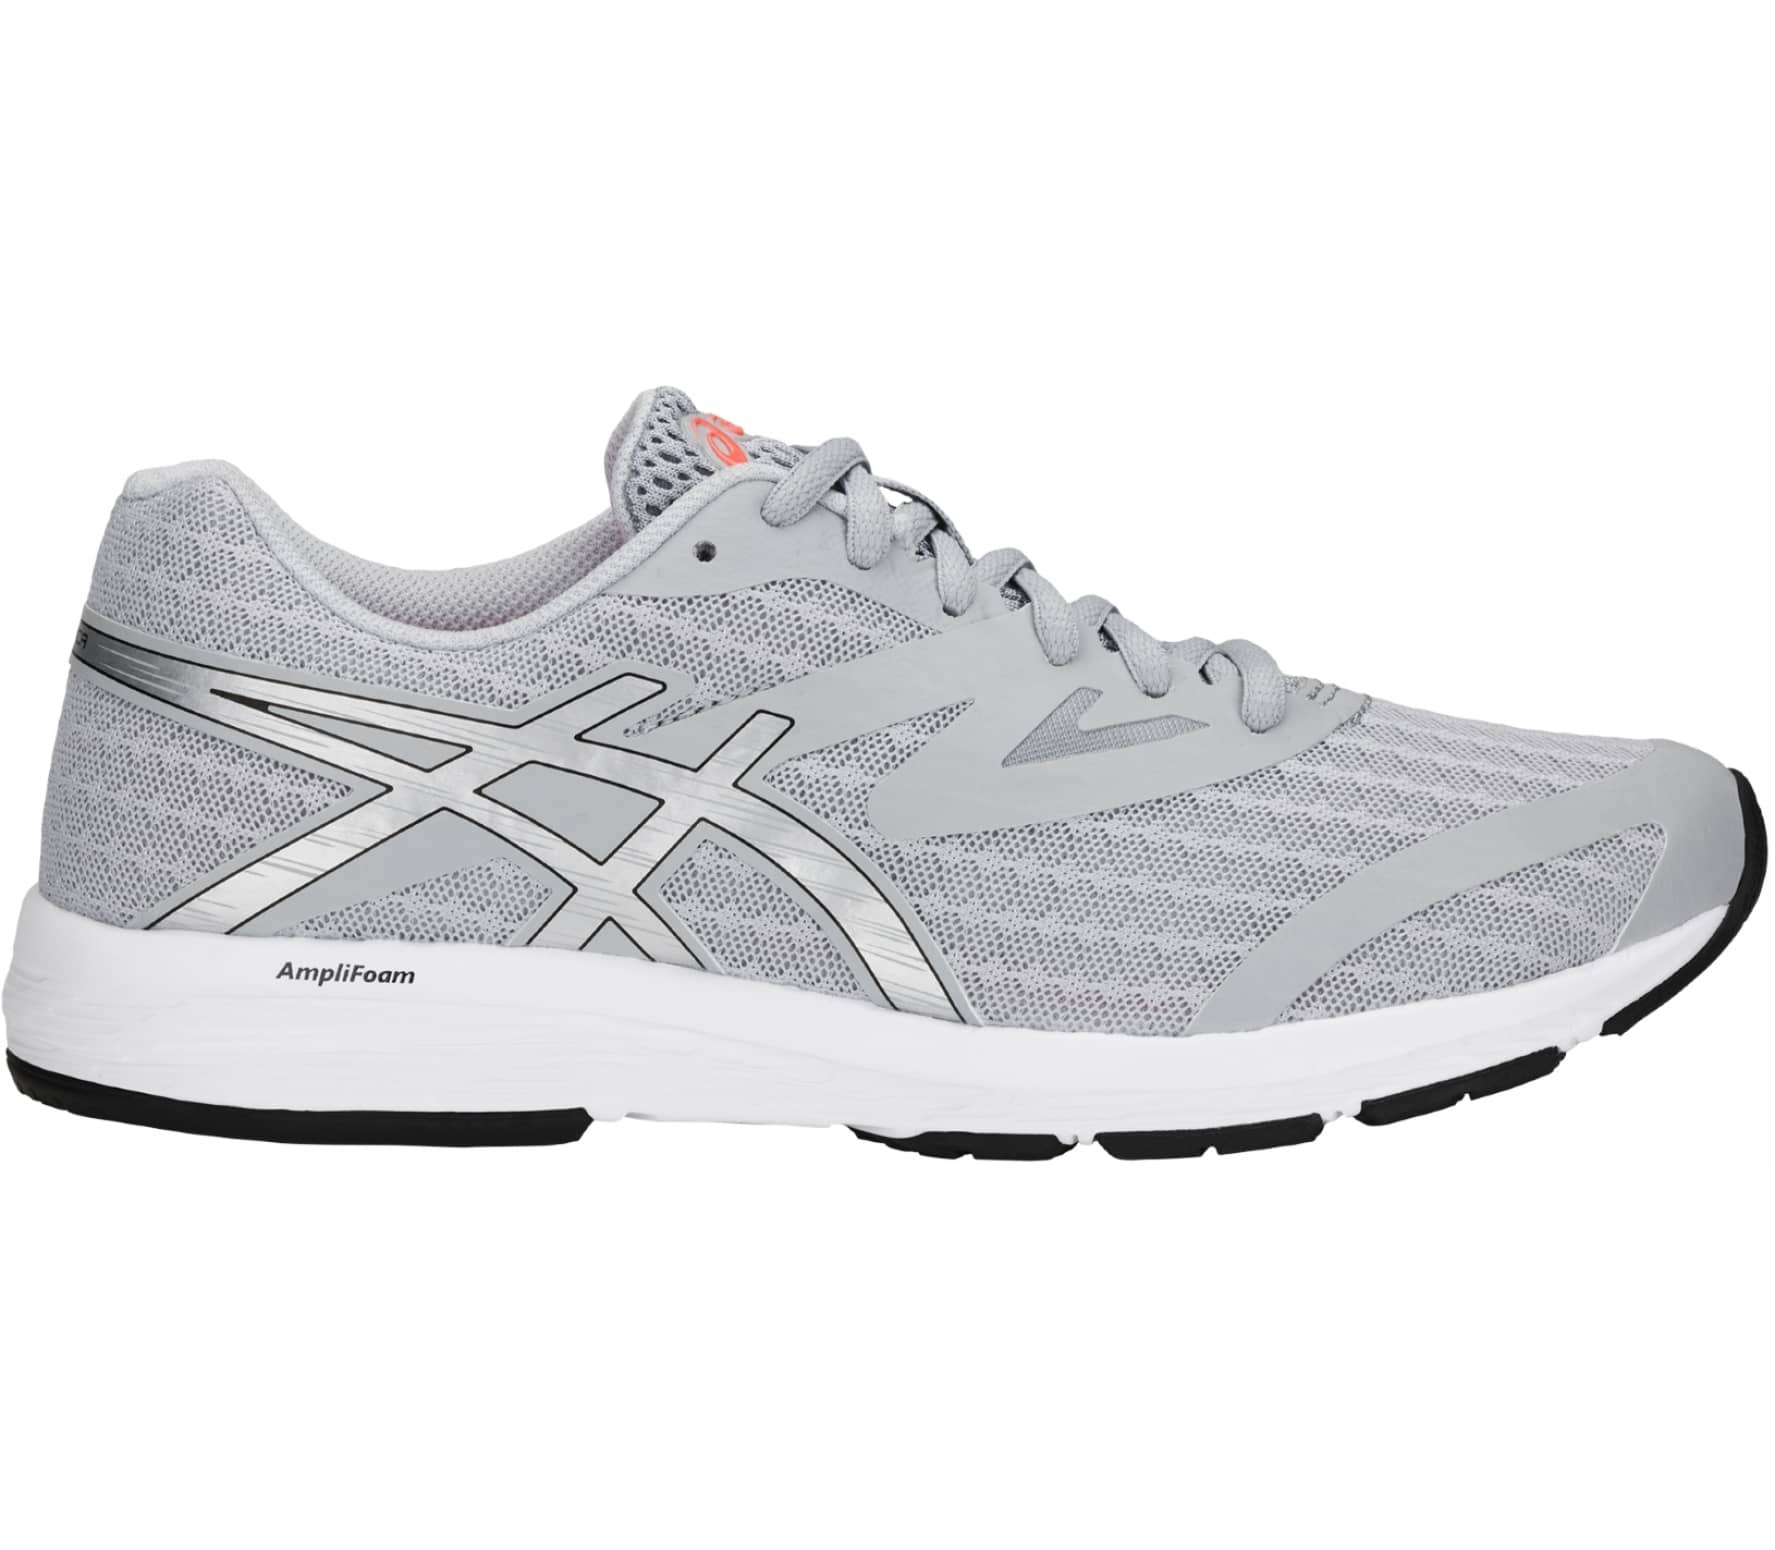 separation shoes 549e0 be078 ASICS Amplica Women silver